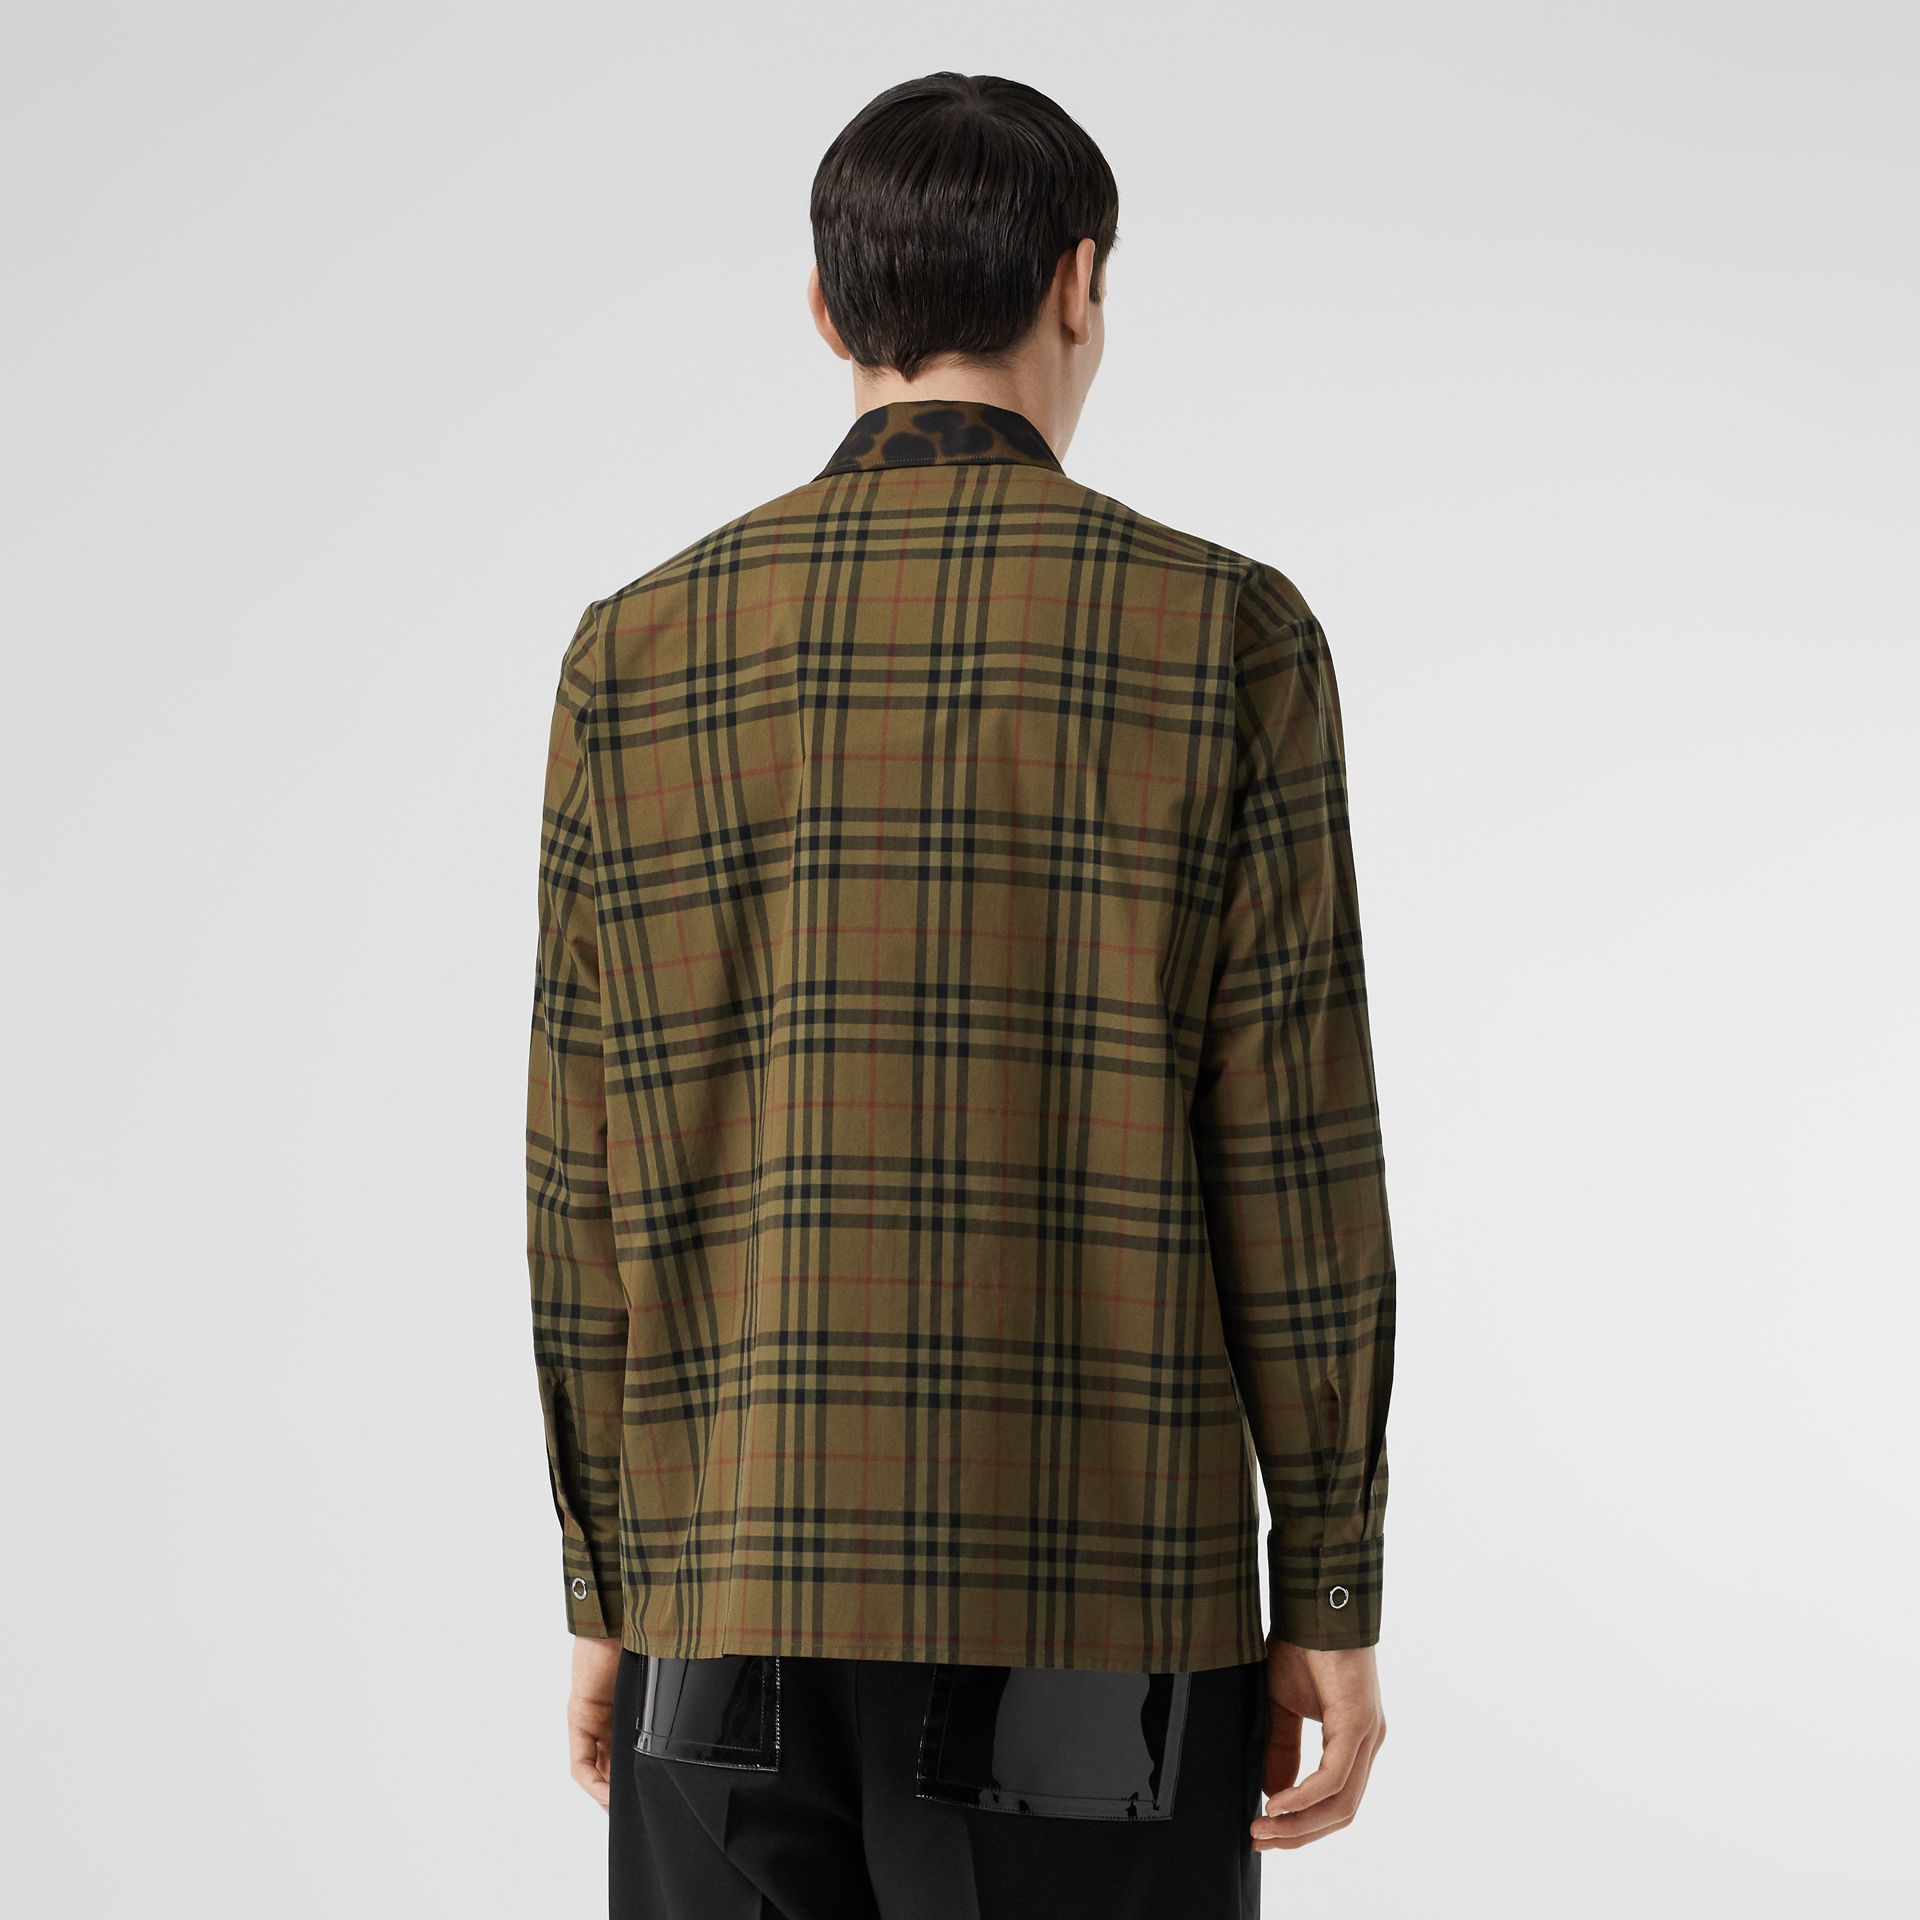 Contrast Collar Vintage Check Cotton Shirt in Army Green | Burberry - gallery image 2